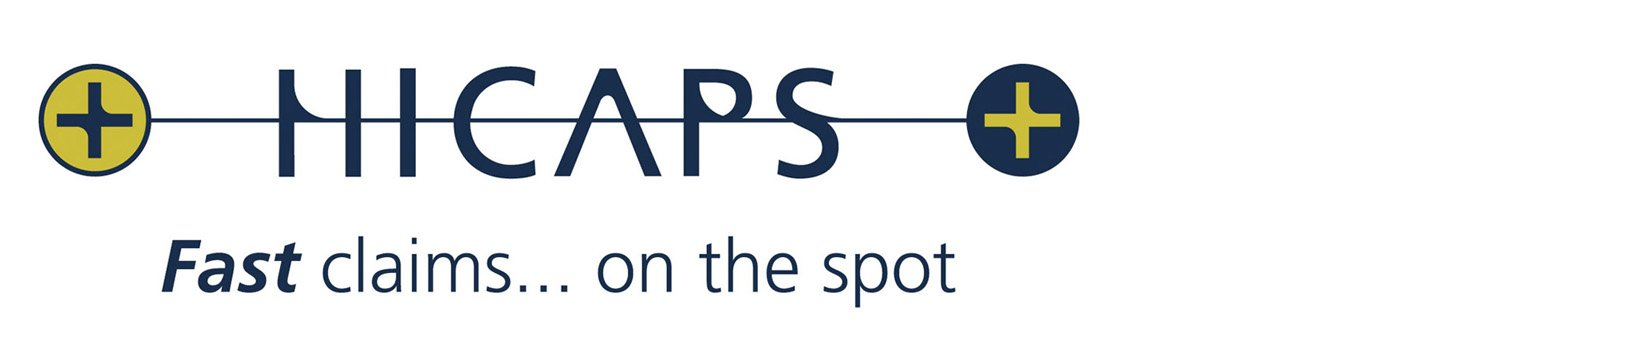 Click here for HICAPS information